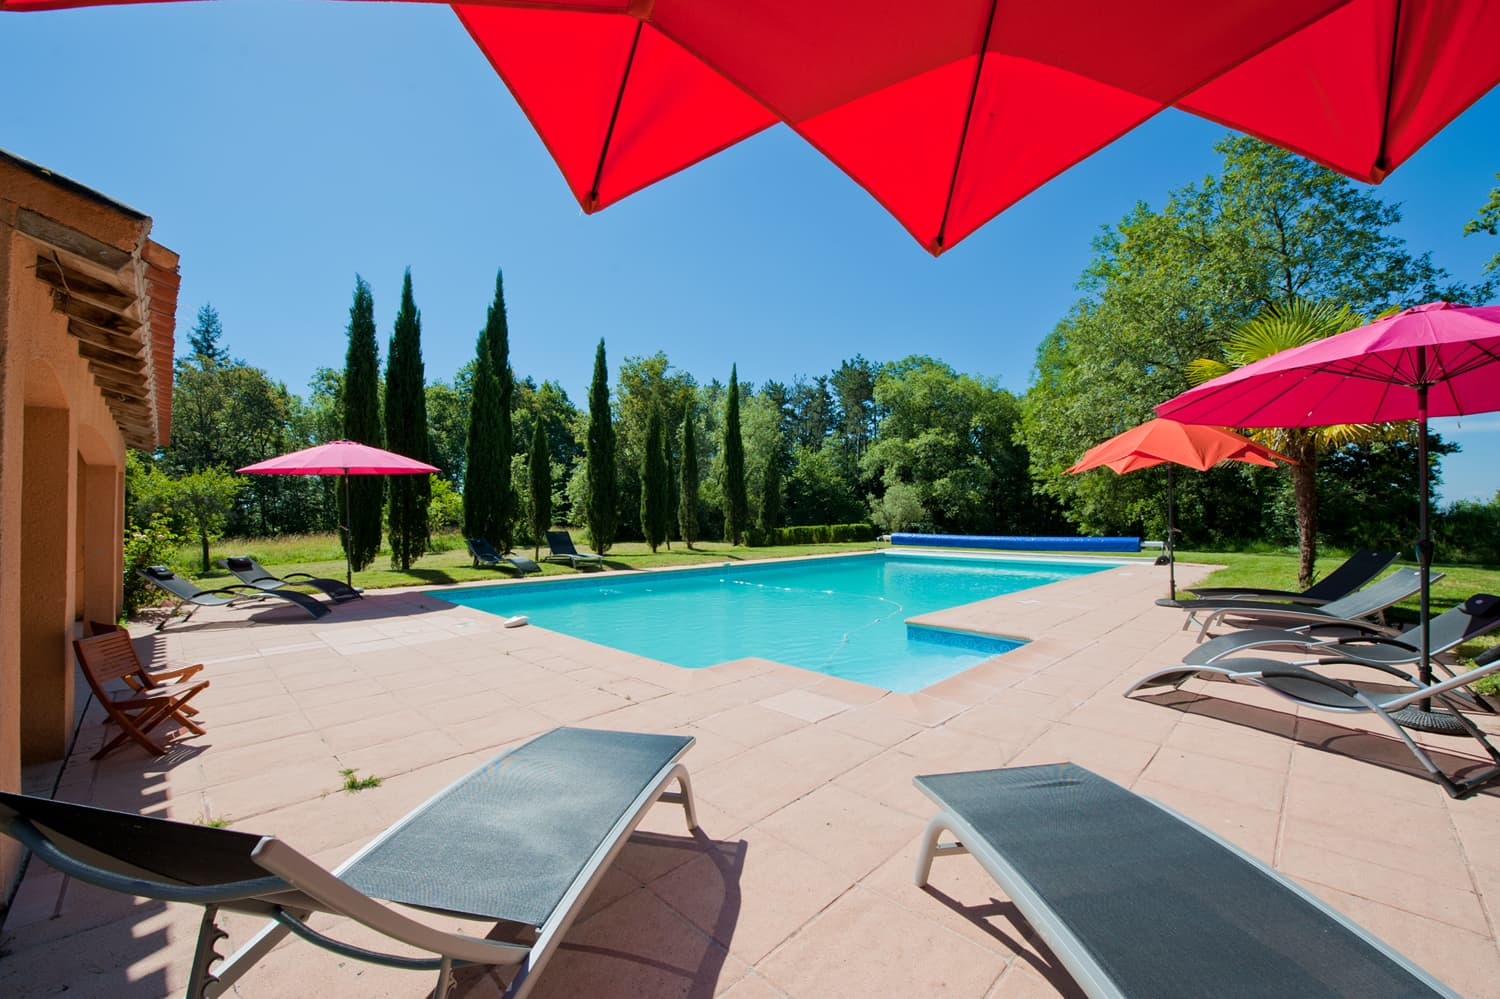 Private, heated pool with sun terrace and loungers